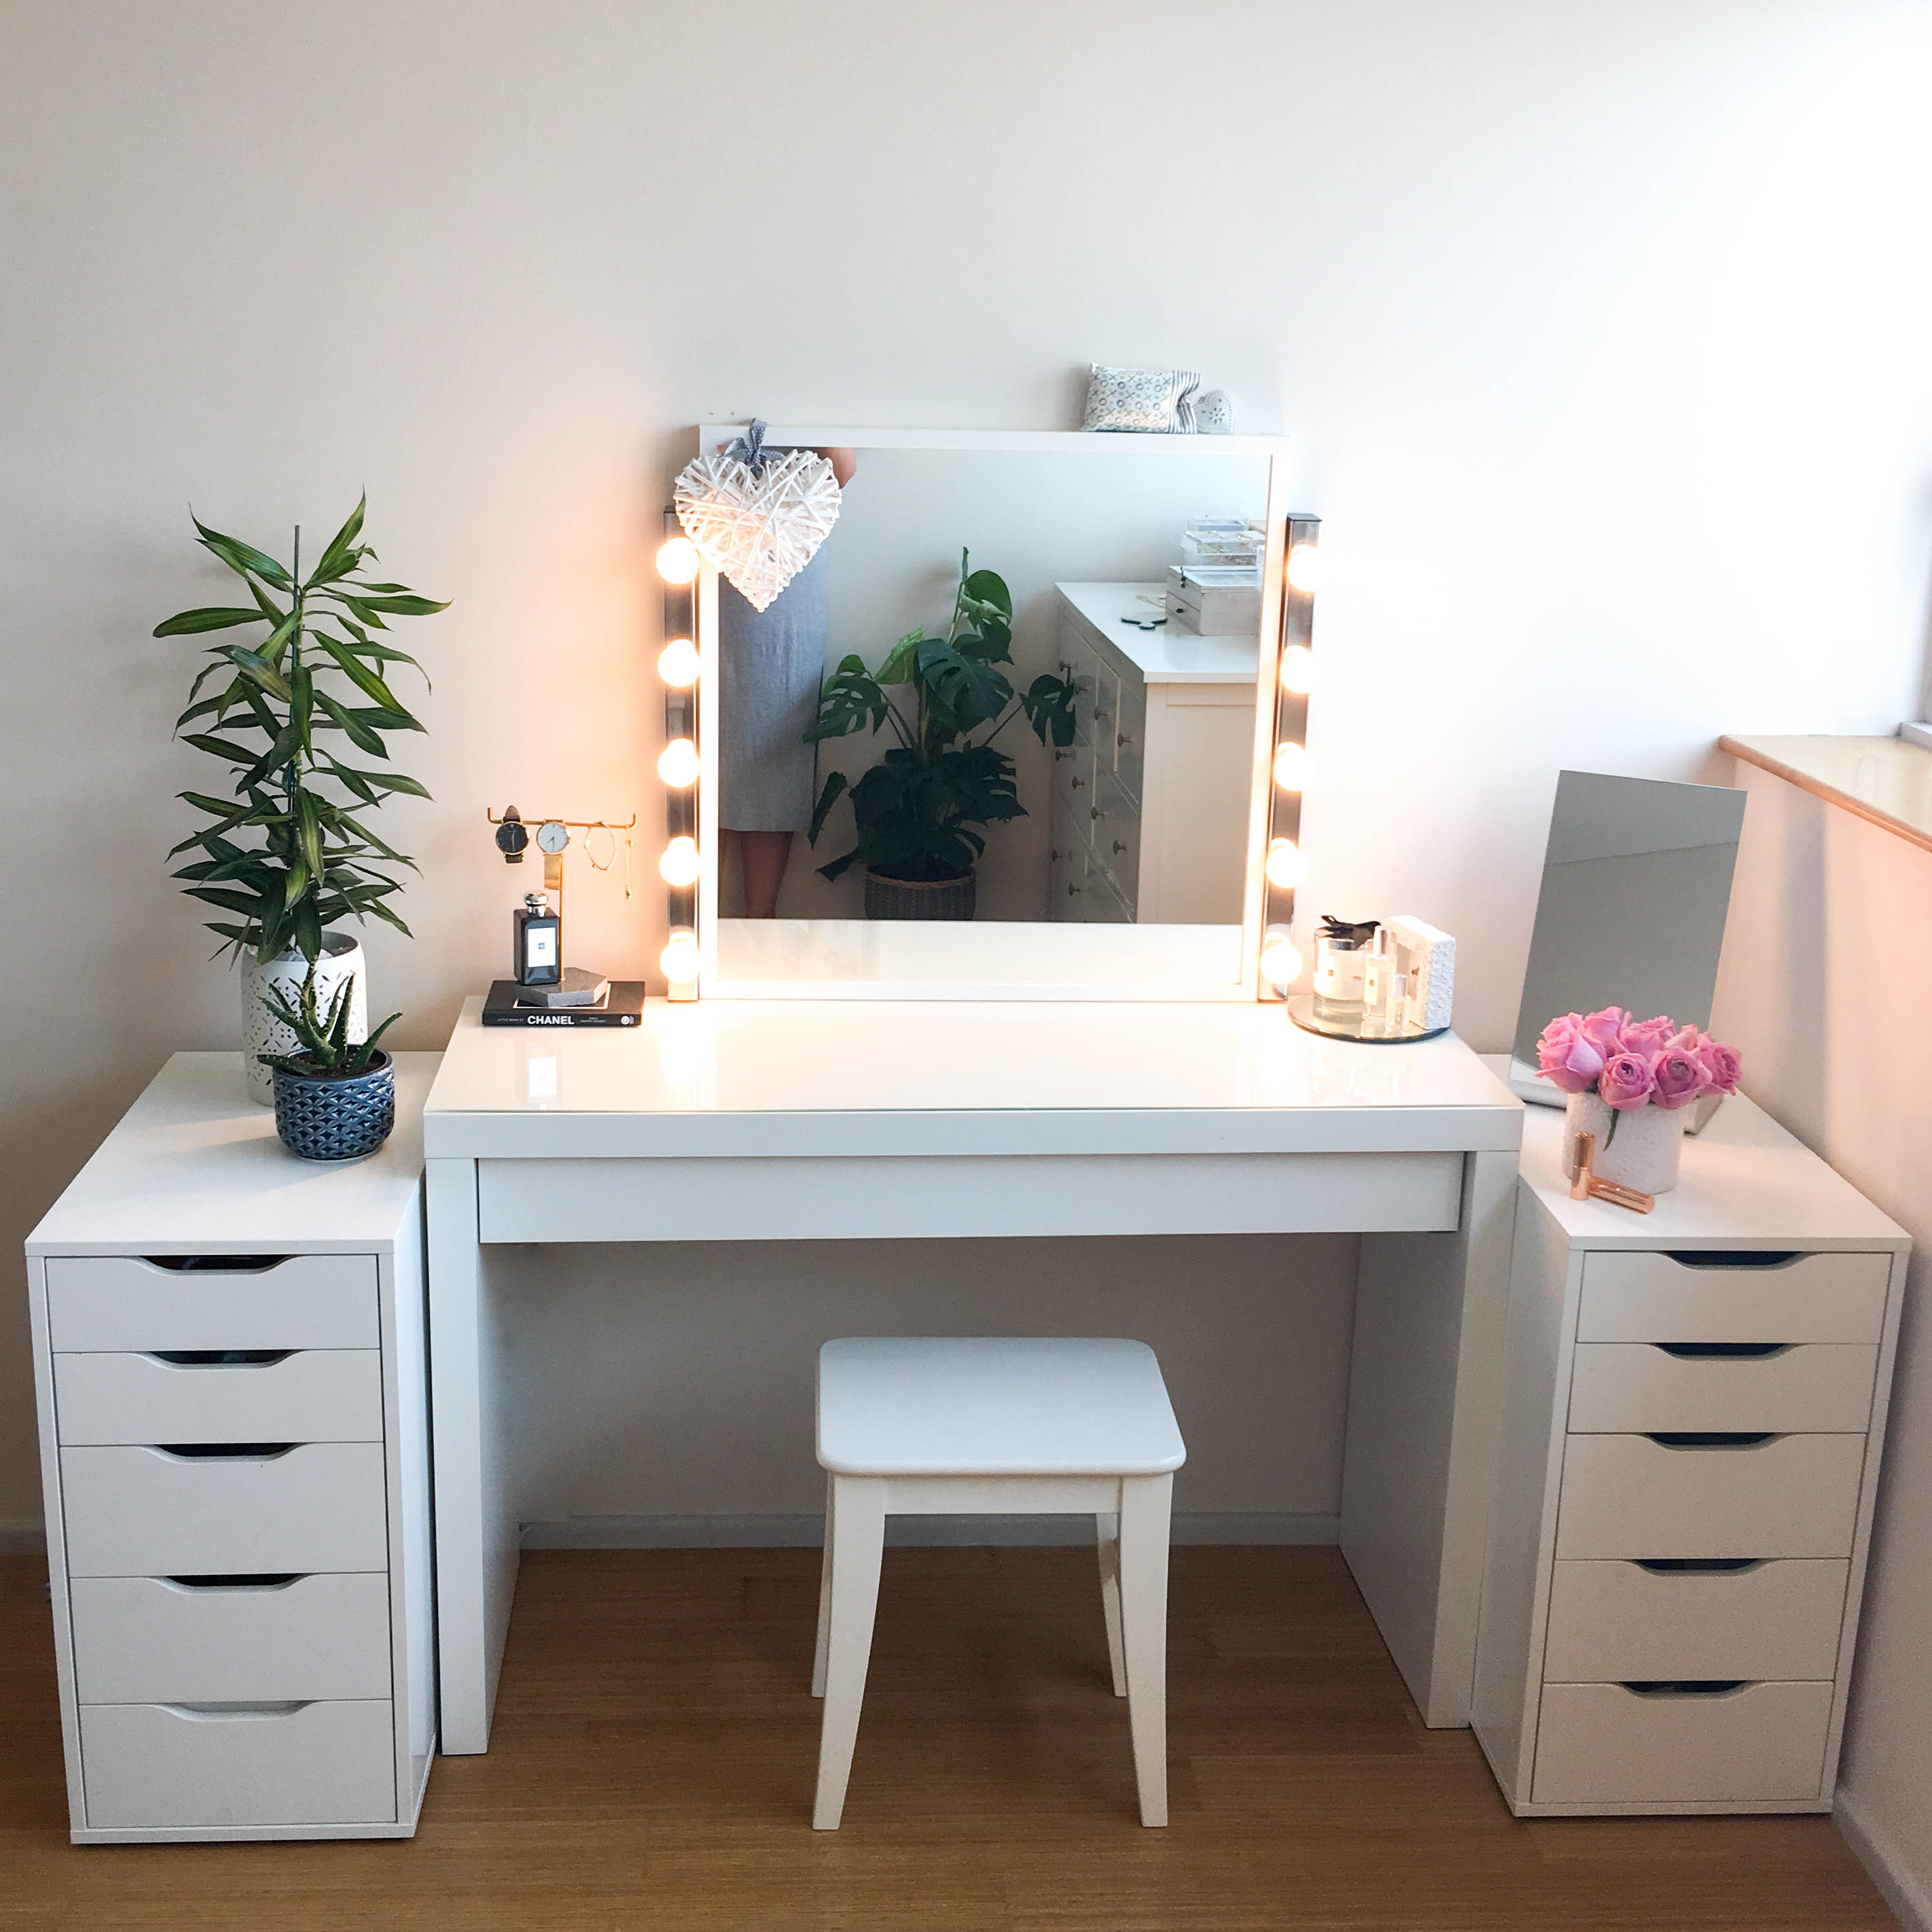 Superieur Being A Fan Of Makeup And Cosmetics For As Long As I Can Remember, I Always  Longed To Have The Perfect Dressing Table And U0027vanity Mirroru0027 U2013 The Ones  That ...